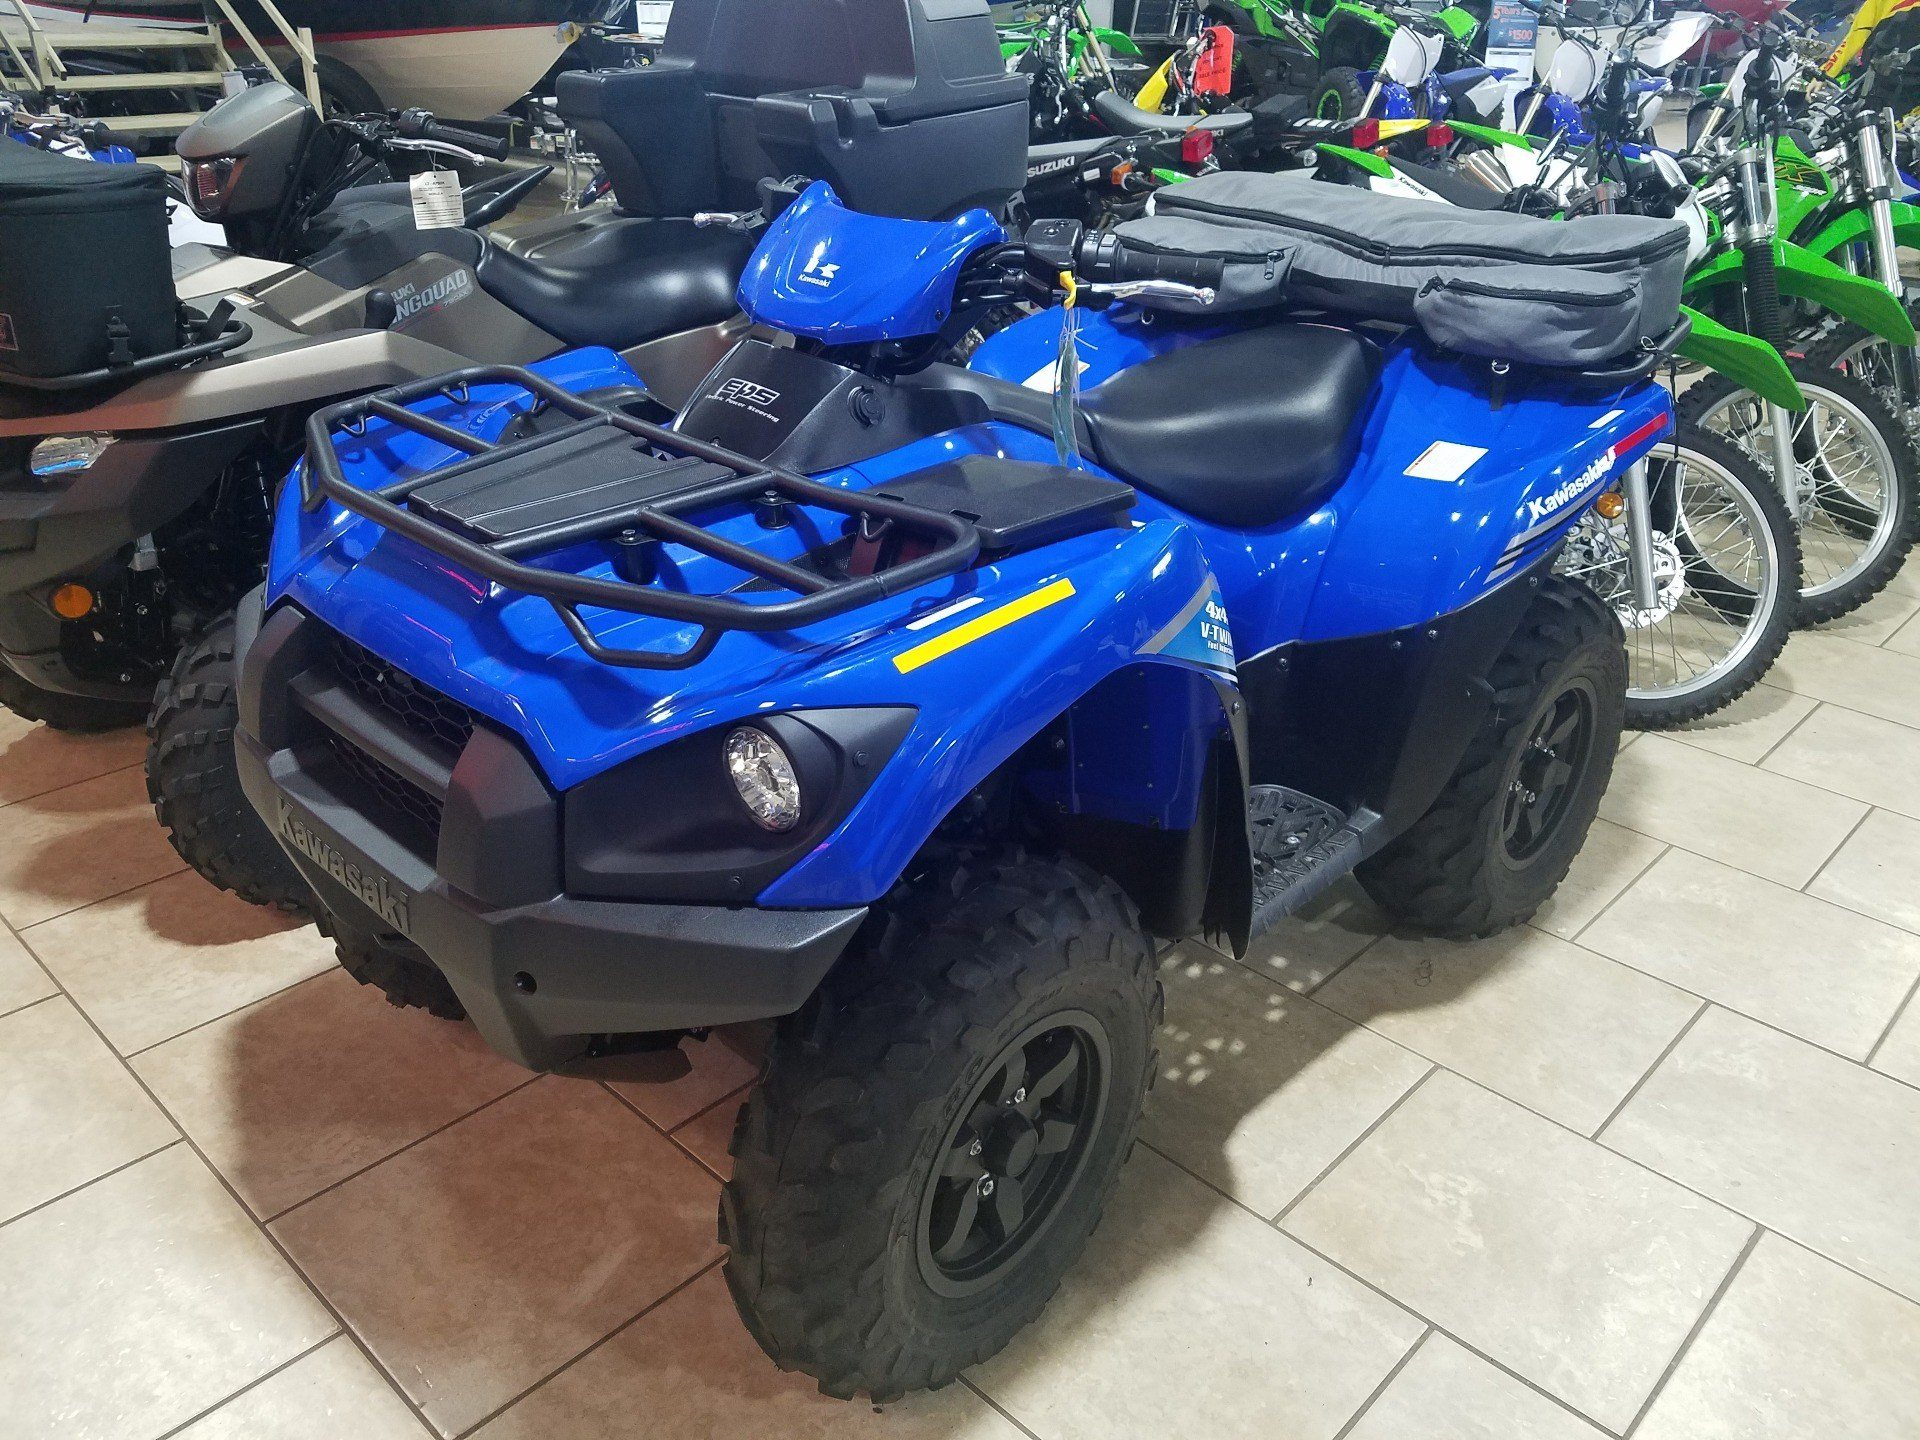 2020 Kawasaki Brute Force 750 4x4i EPS in Rogers, Arkansas - Photo 1